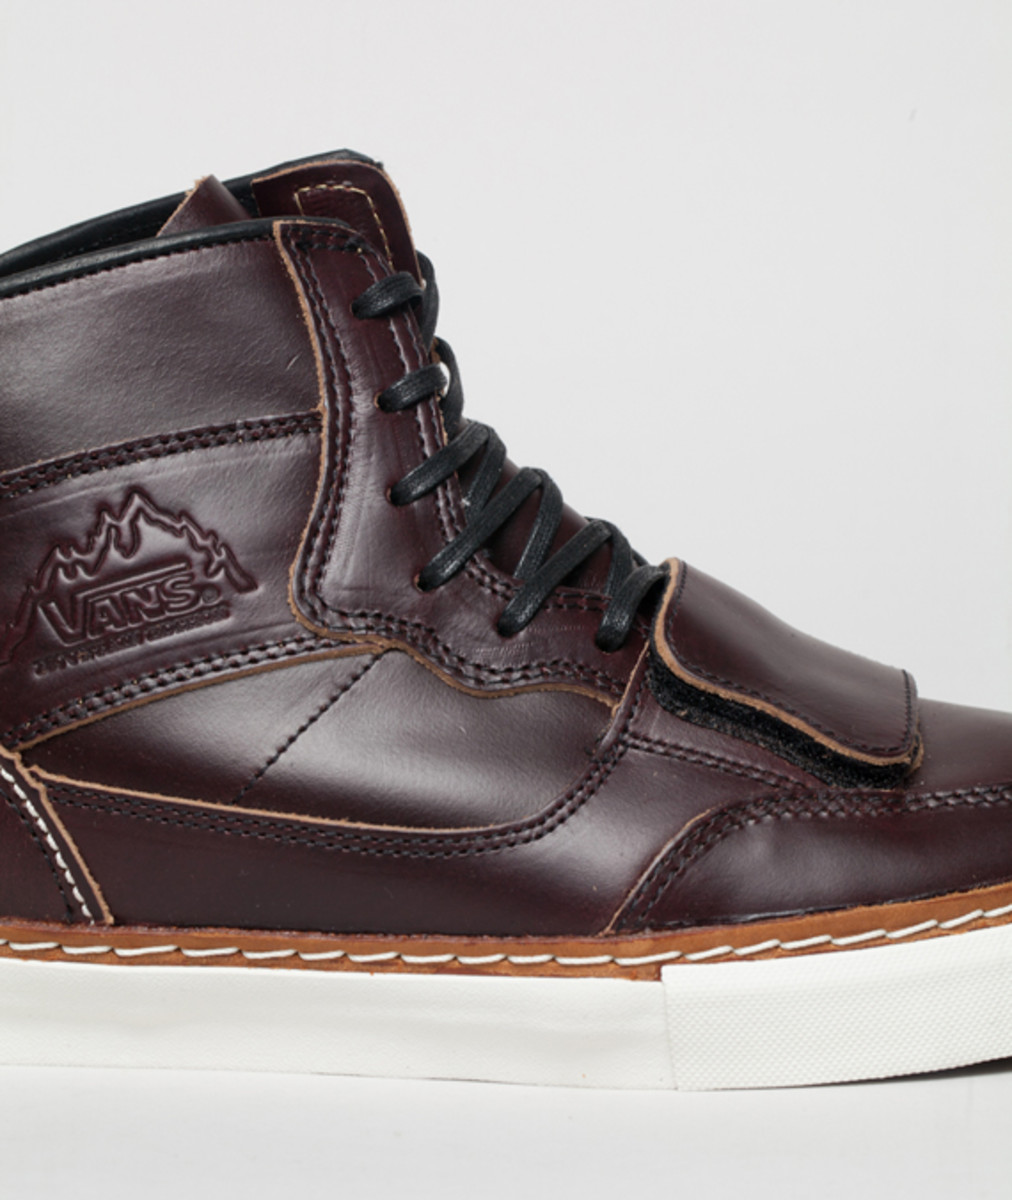 horween-leather-vans-mt-edition-decon-lx-06